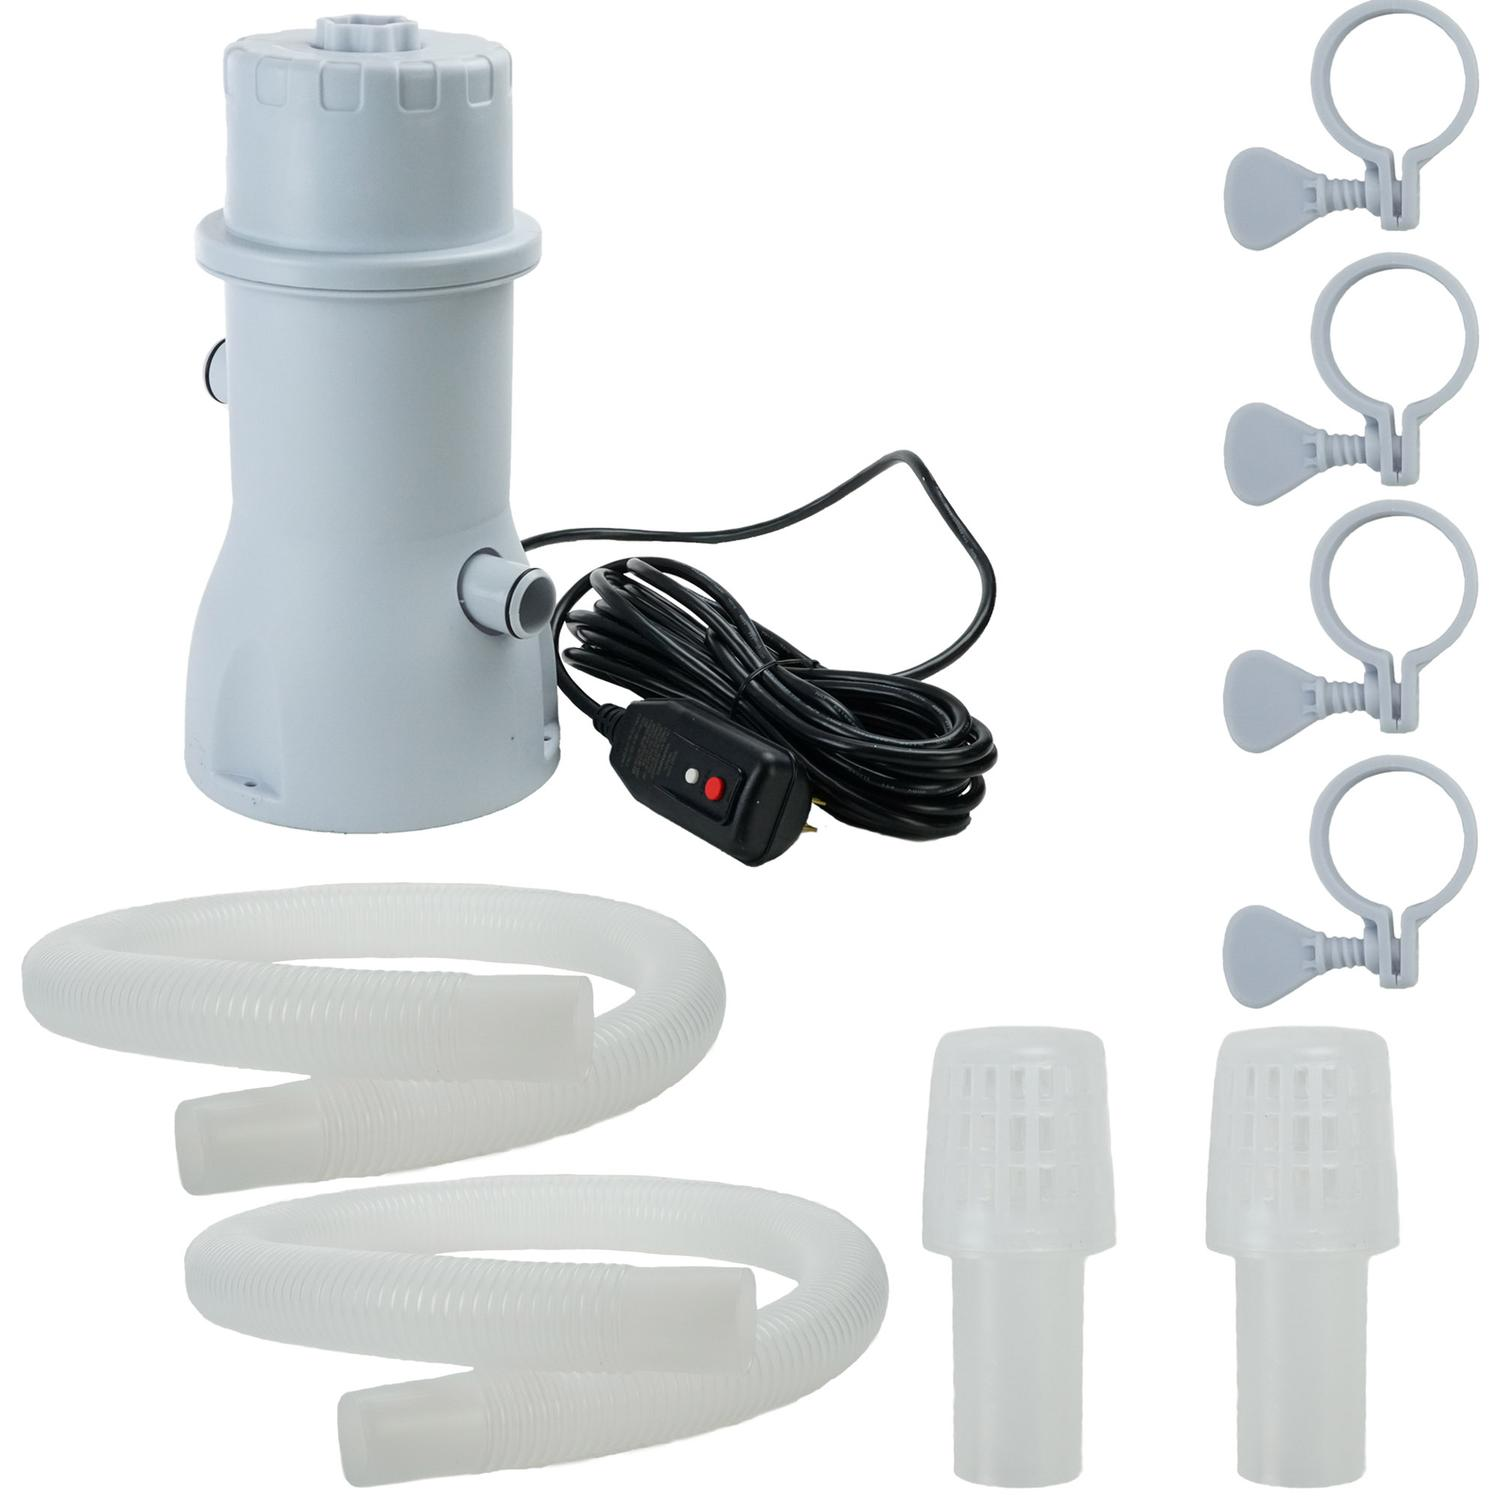 530 Gallon Above Ground Swimming Pool Filter Pump by Pool Central